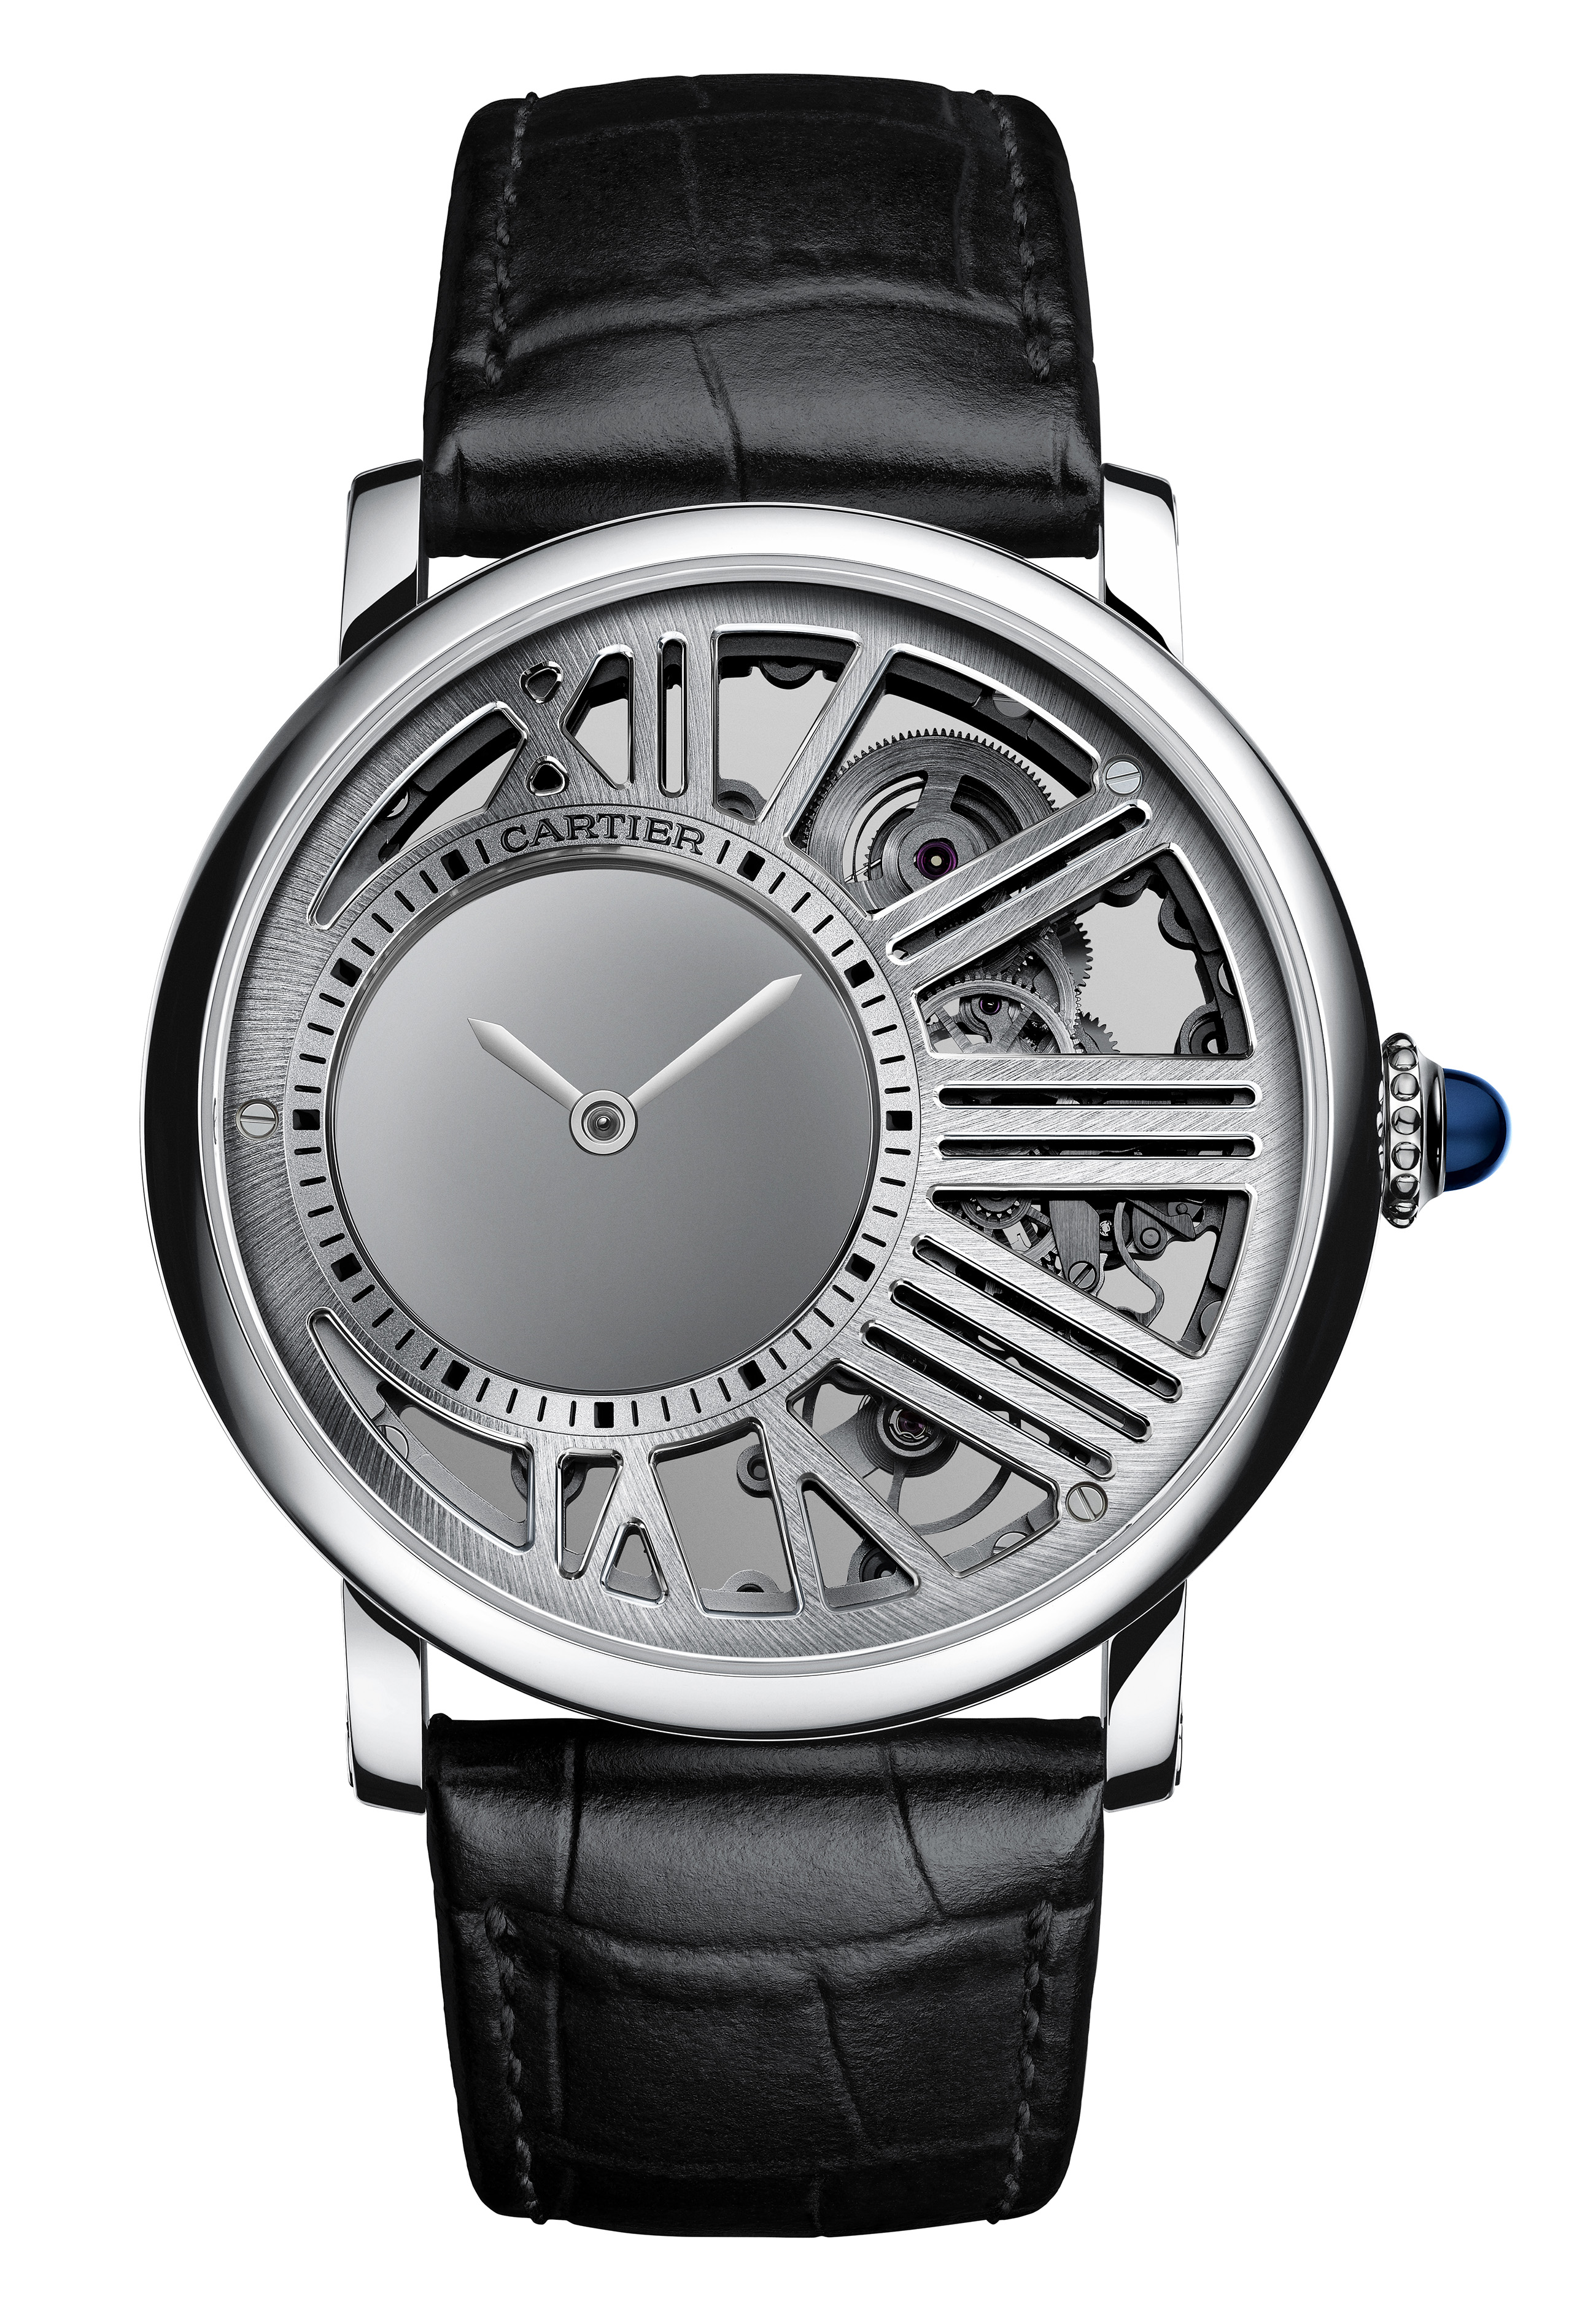 P:Prensa 2017PRESS RELEASES 201703_CARTIER_EXCEPTIONAL_WATCHES_SIHH2017IMAGESHIGH RES07B_Mysterious_ Hour_watch_WHRO0014 copy.jpg